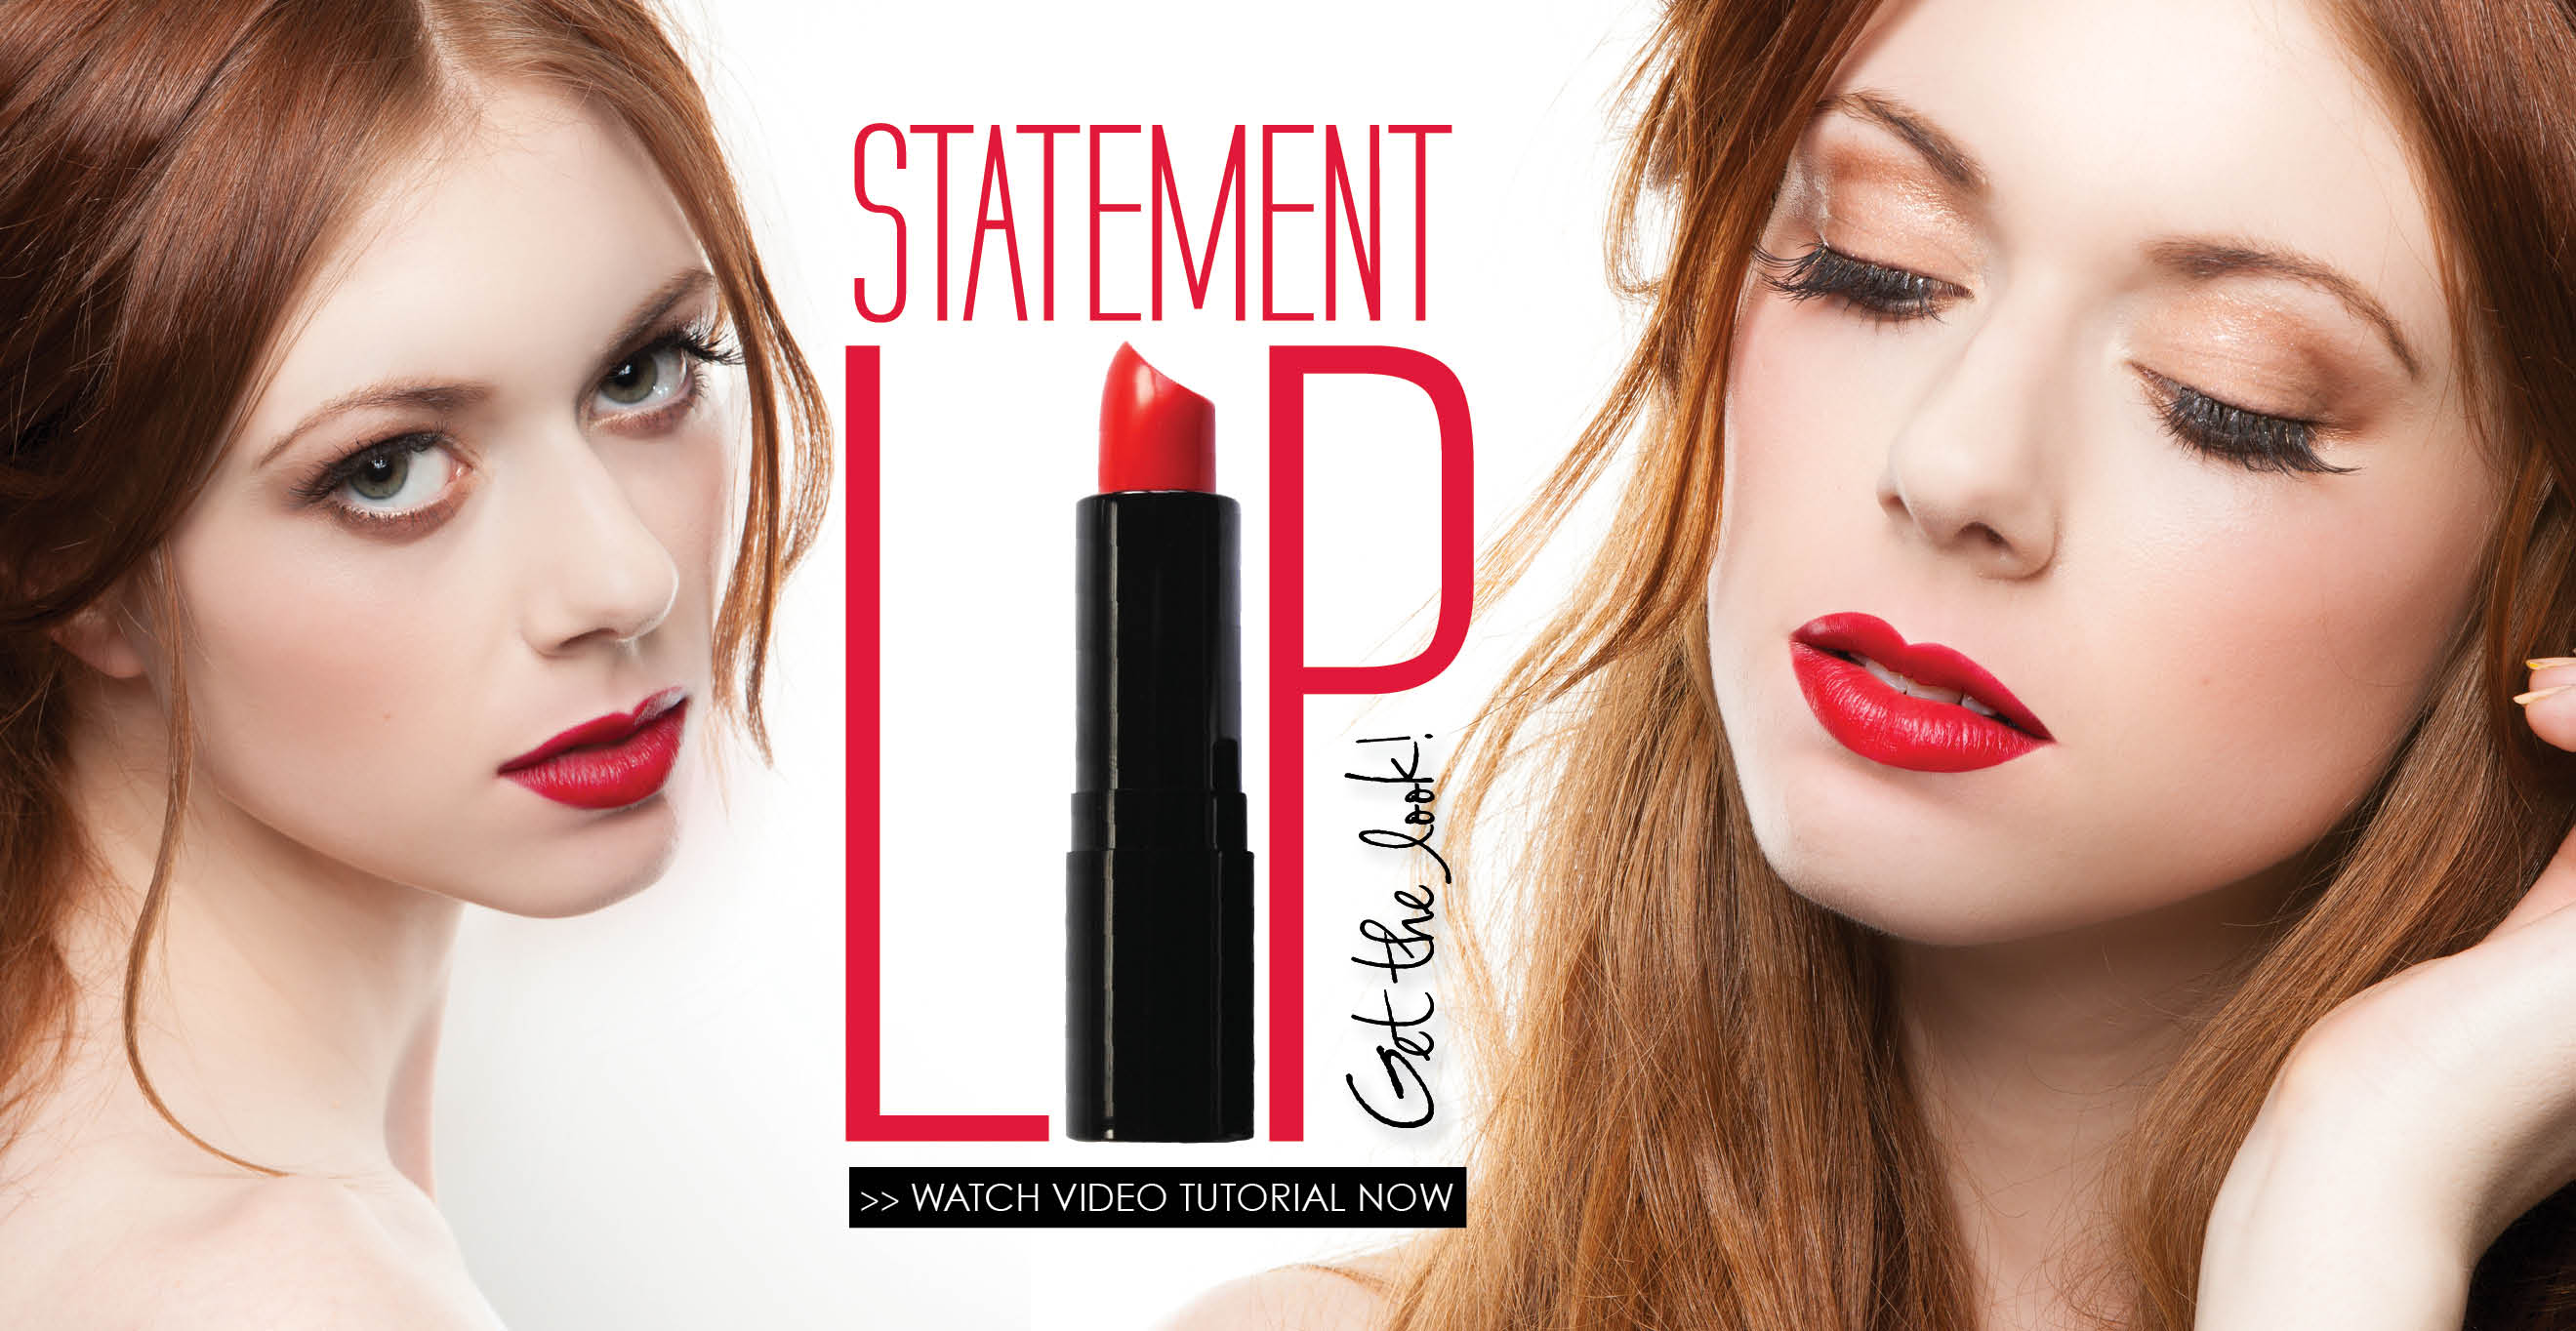 Statement Lip